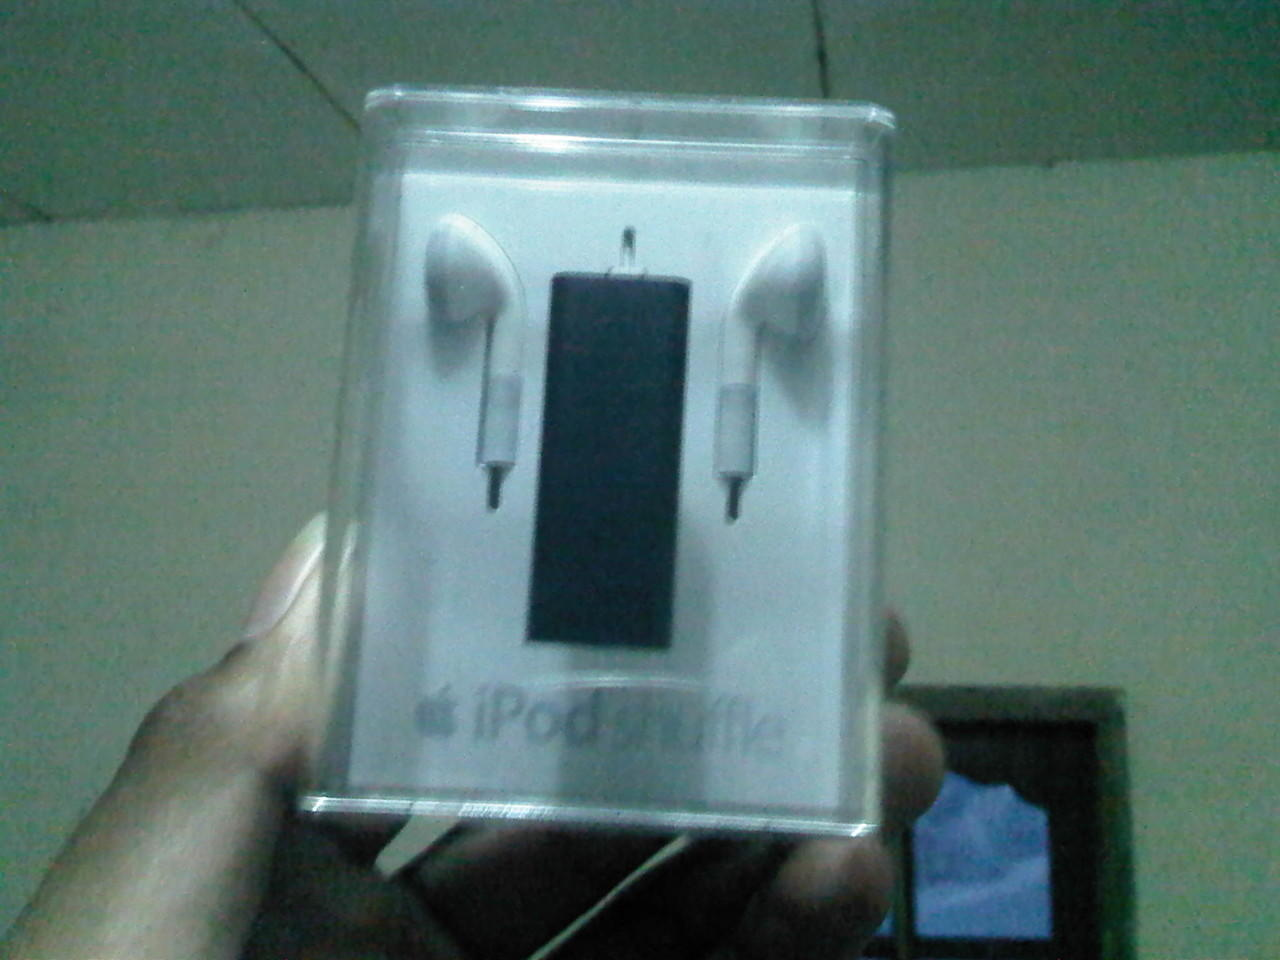 DIJUAL IPOD SHUFLLE 2GB , BRAND NEW IN BOX ! ORI